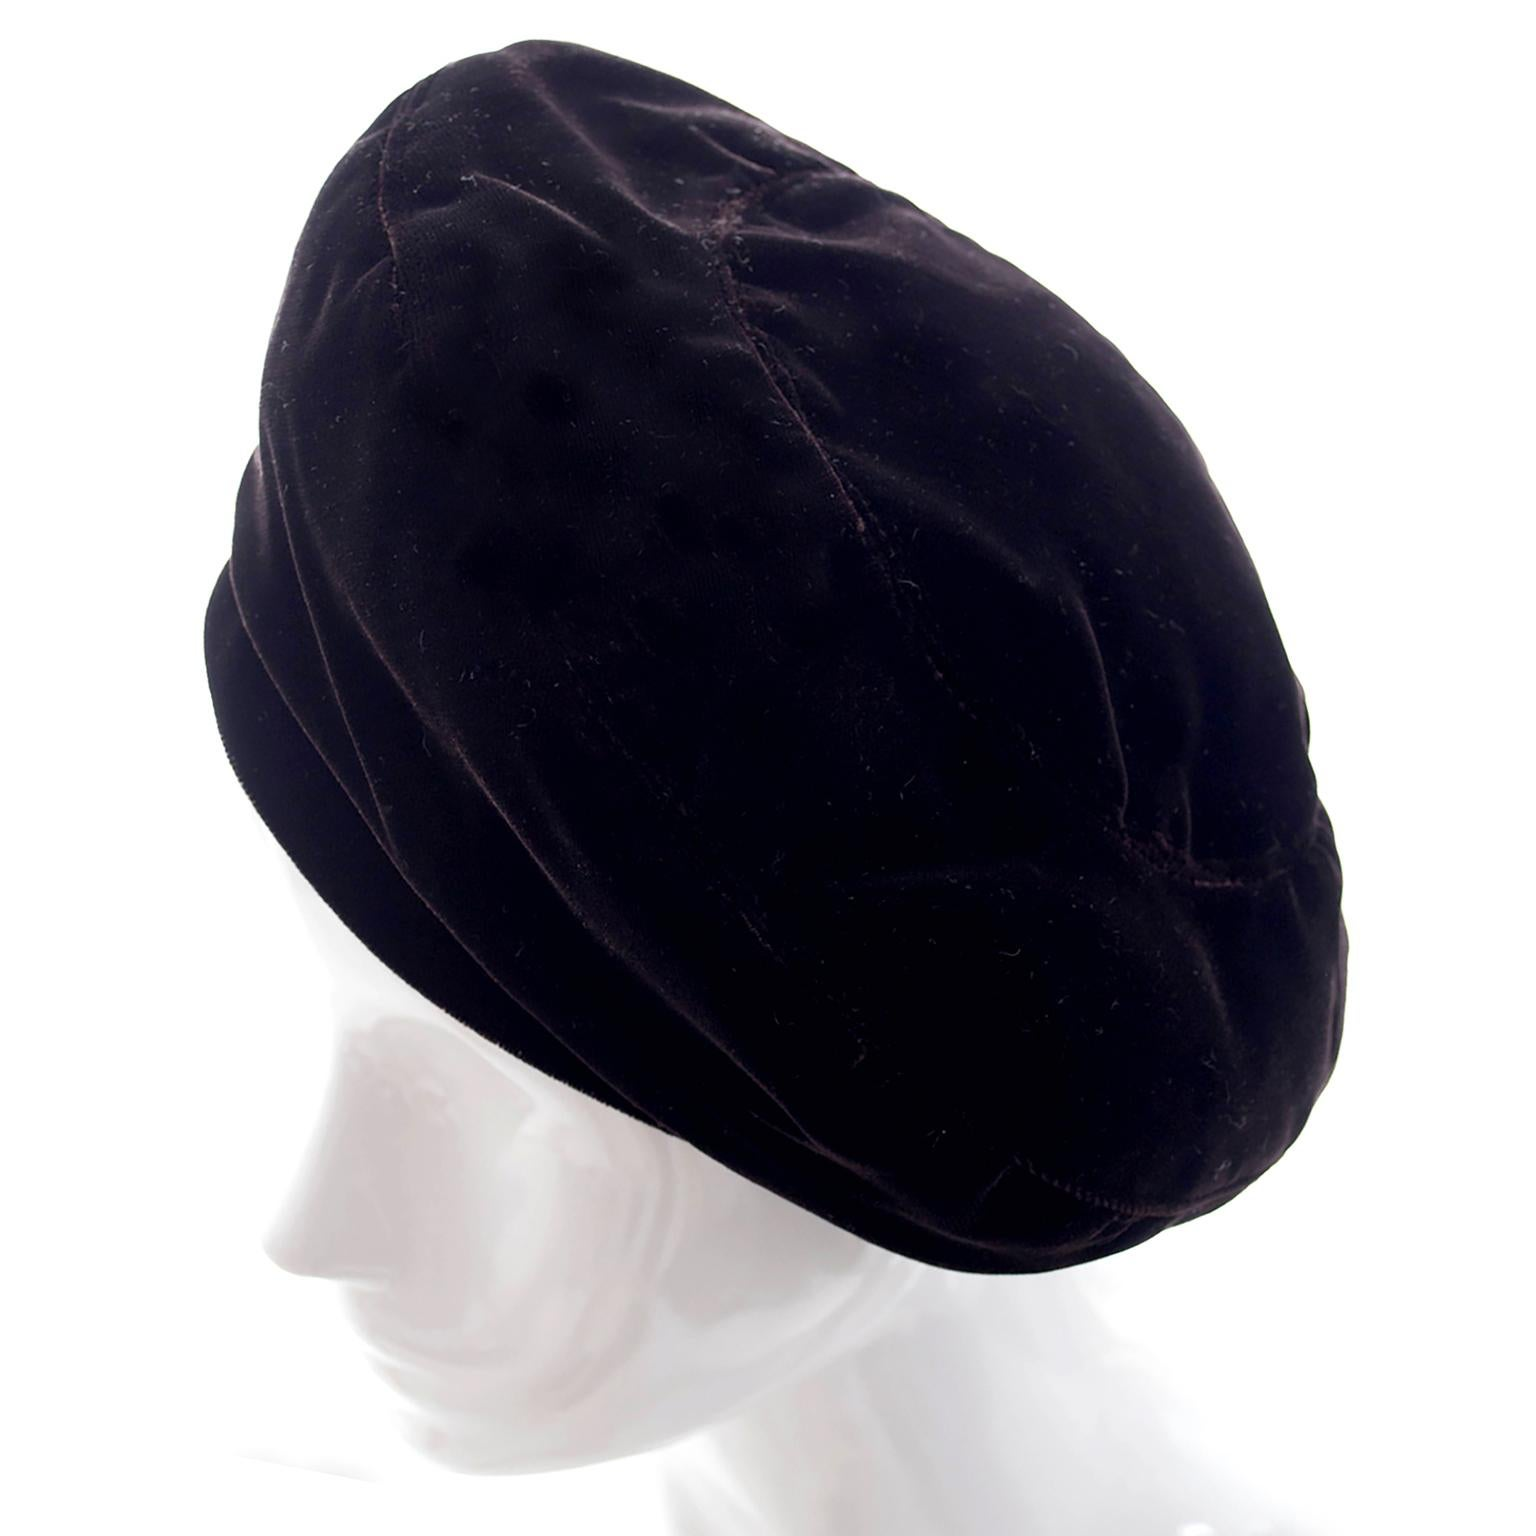 0e8673b4d2867 YSL Vintage Hat Yves Saint Laurent Rive Gauche Beret in Chocolate Brown  Velvet For Sale at 1stdibs